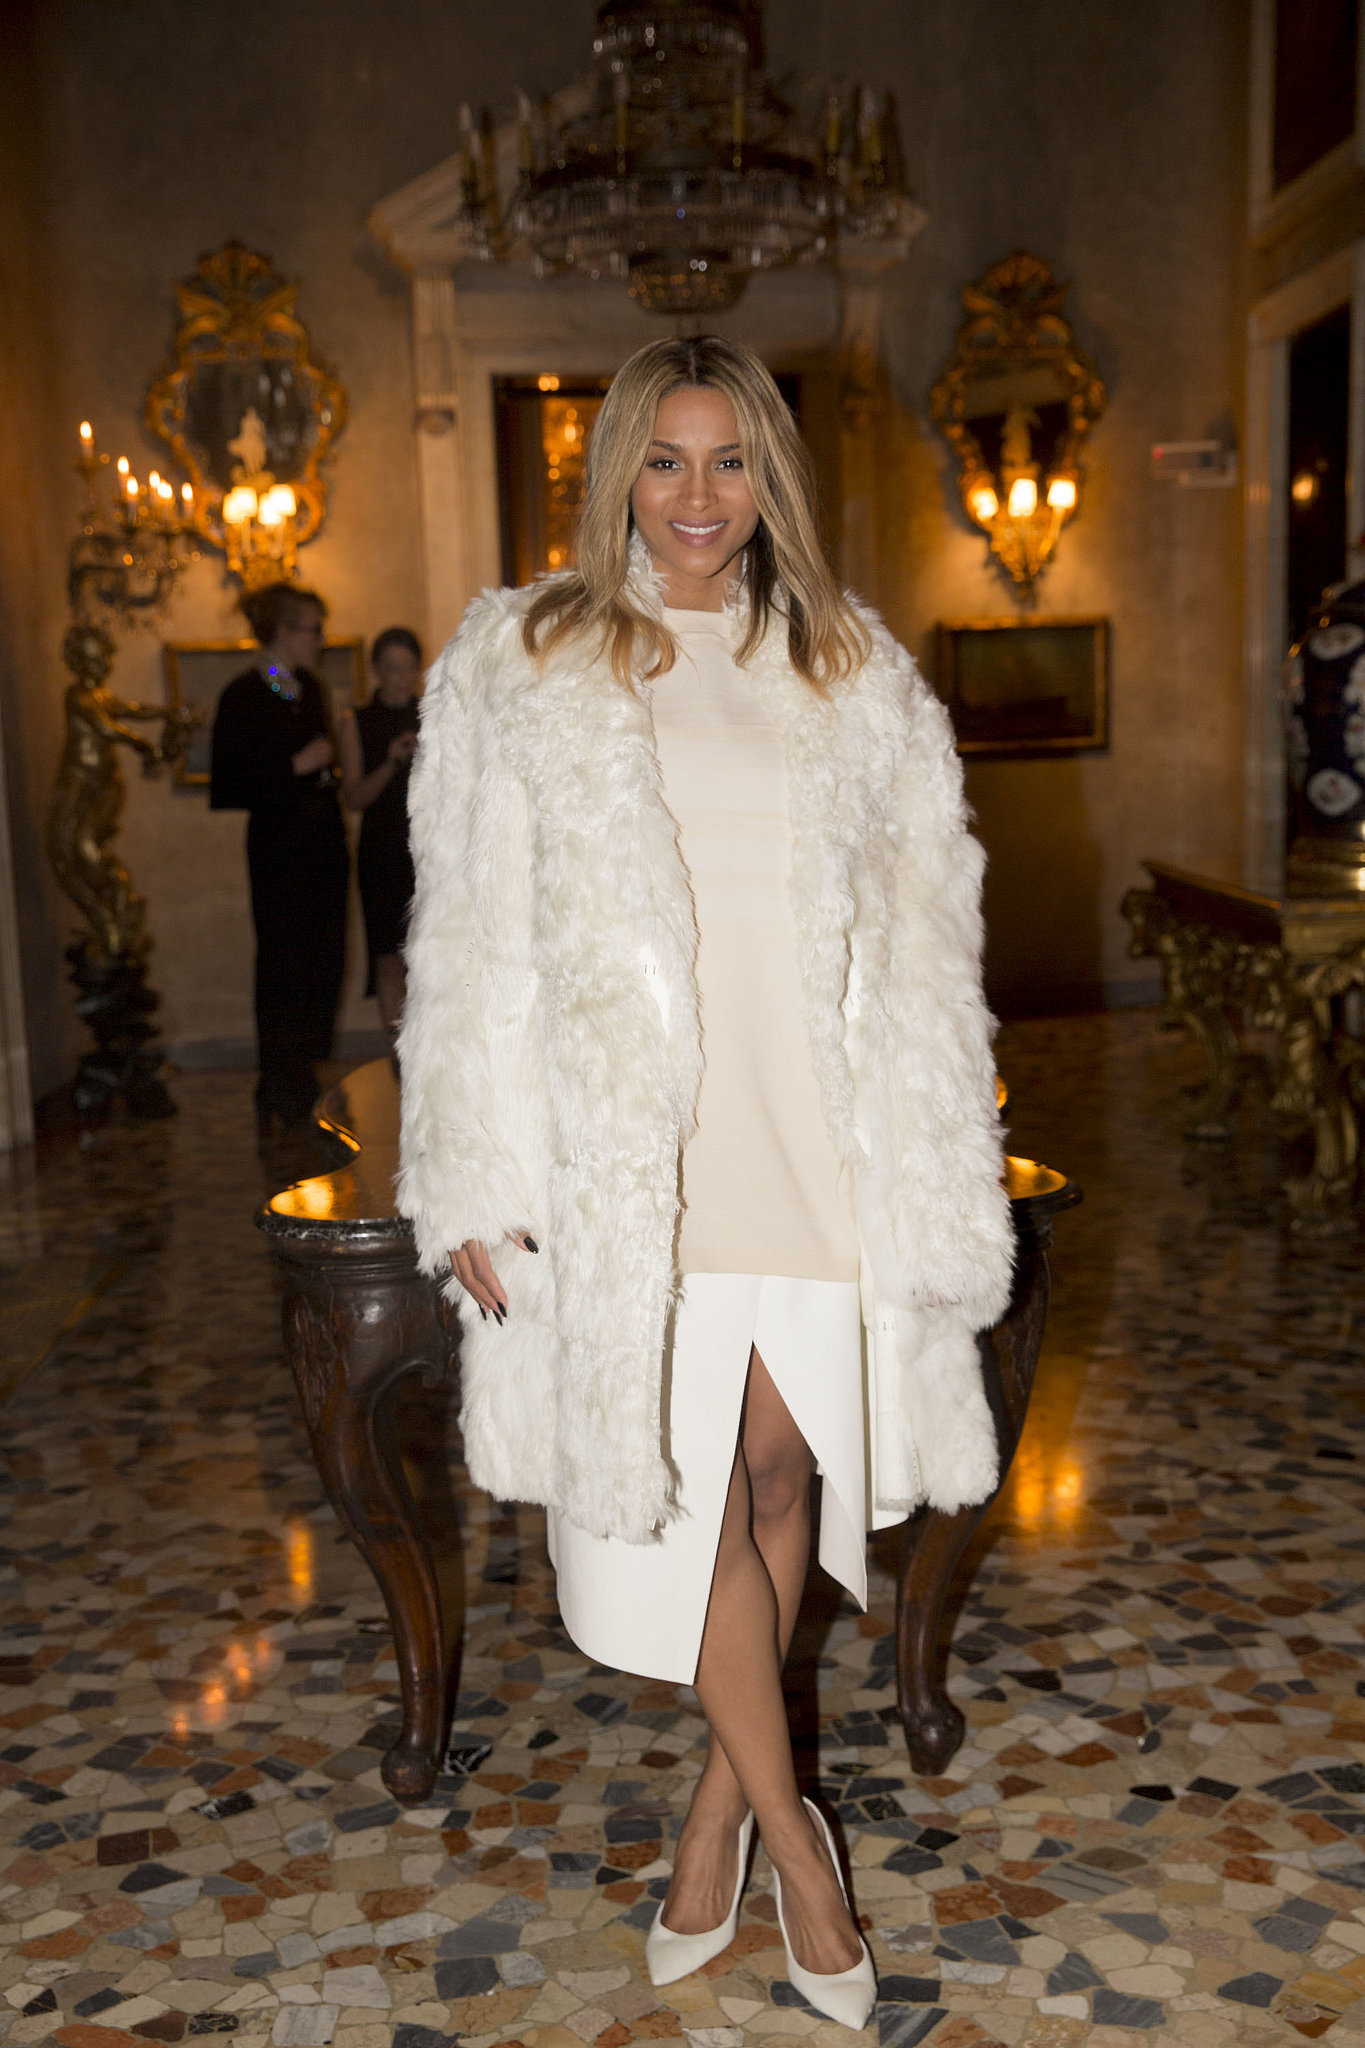 Celeb Moms: Singer Ciara Shares Pic Of Her All-White Nursery